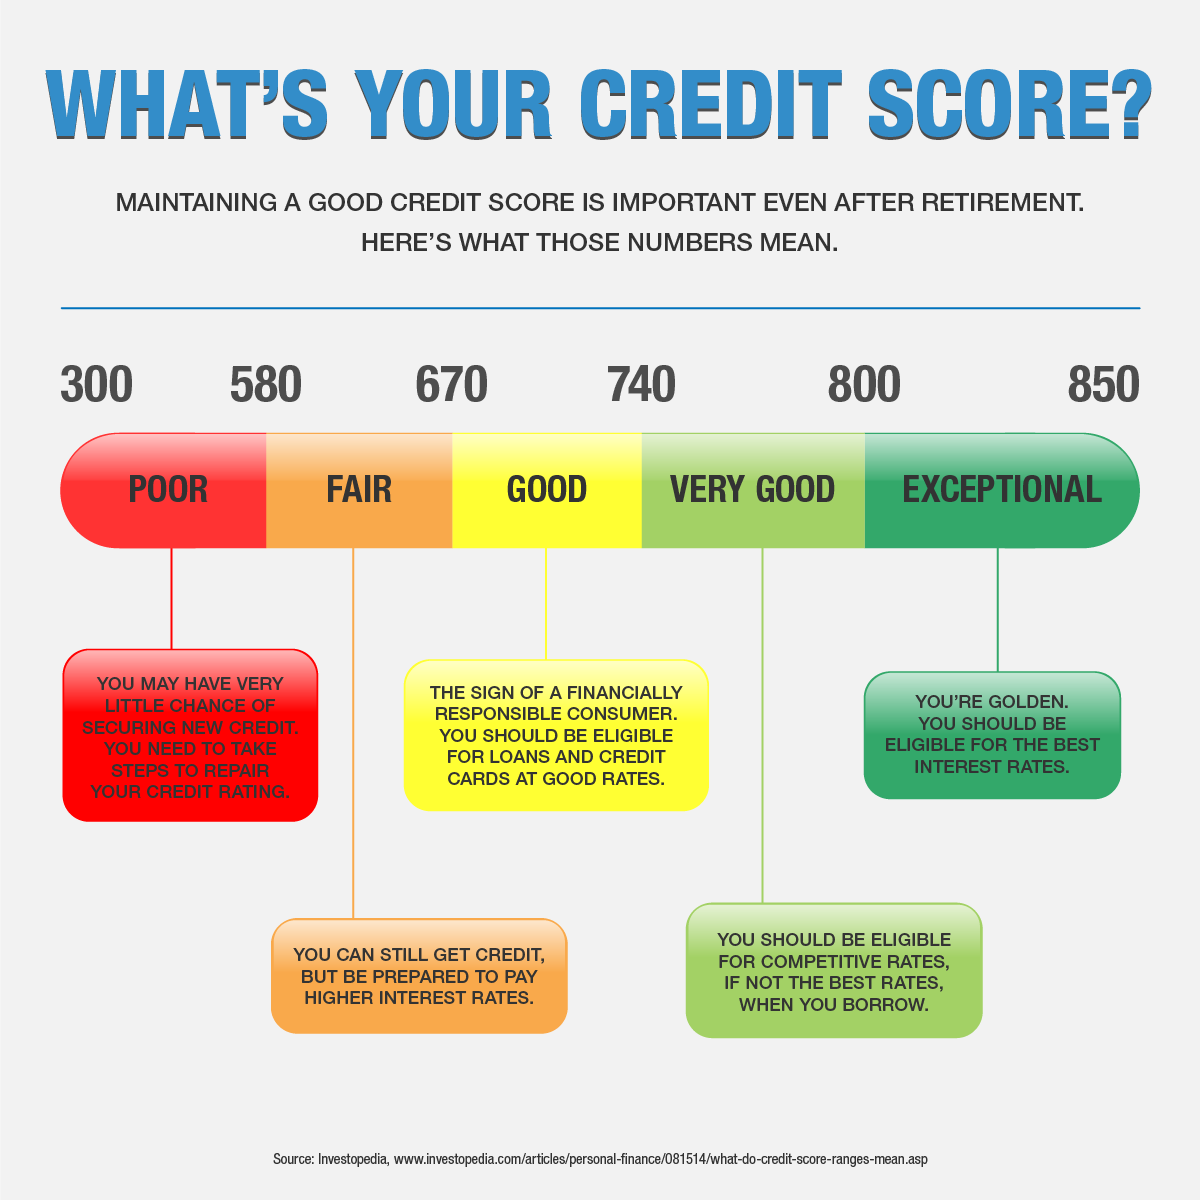 Retirement and your credit score